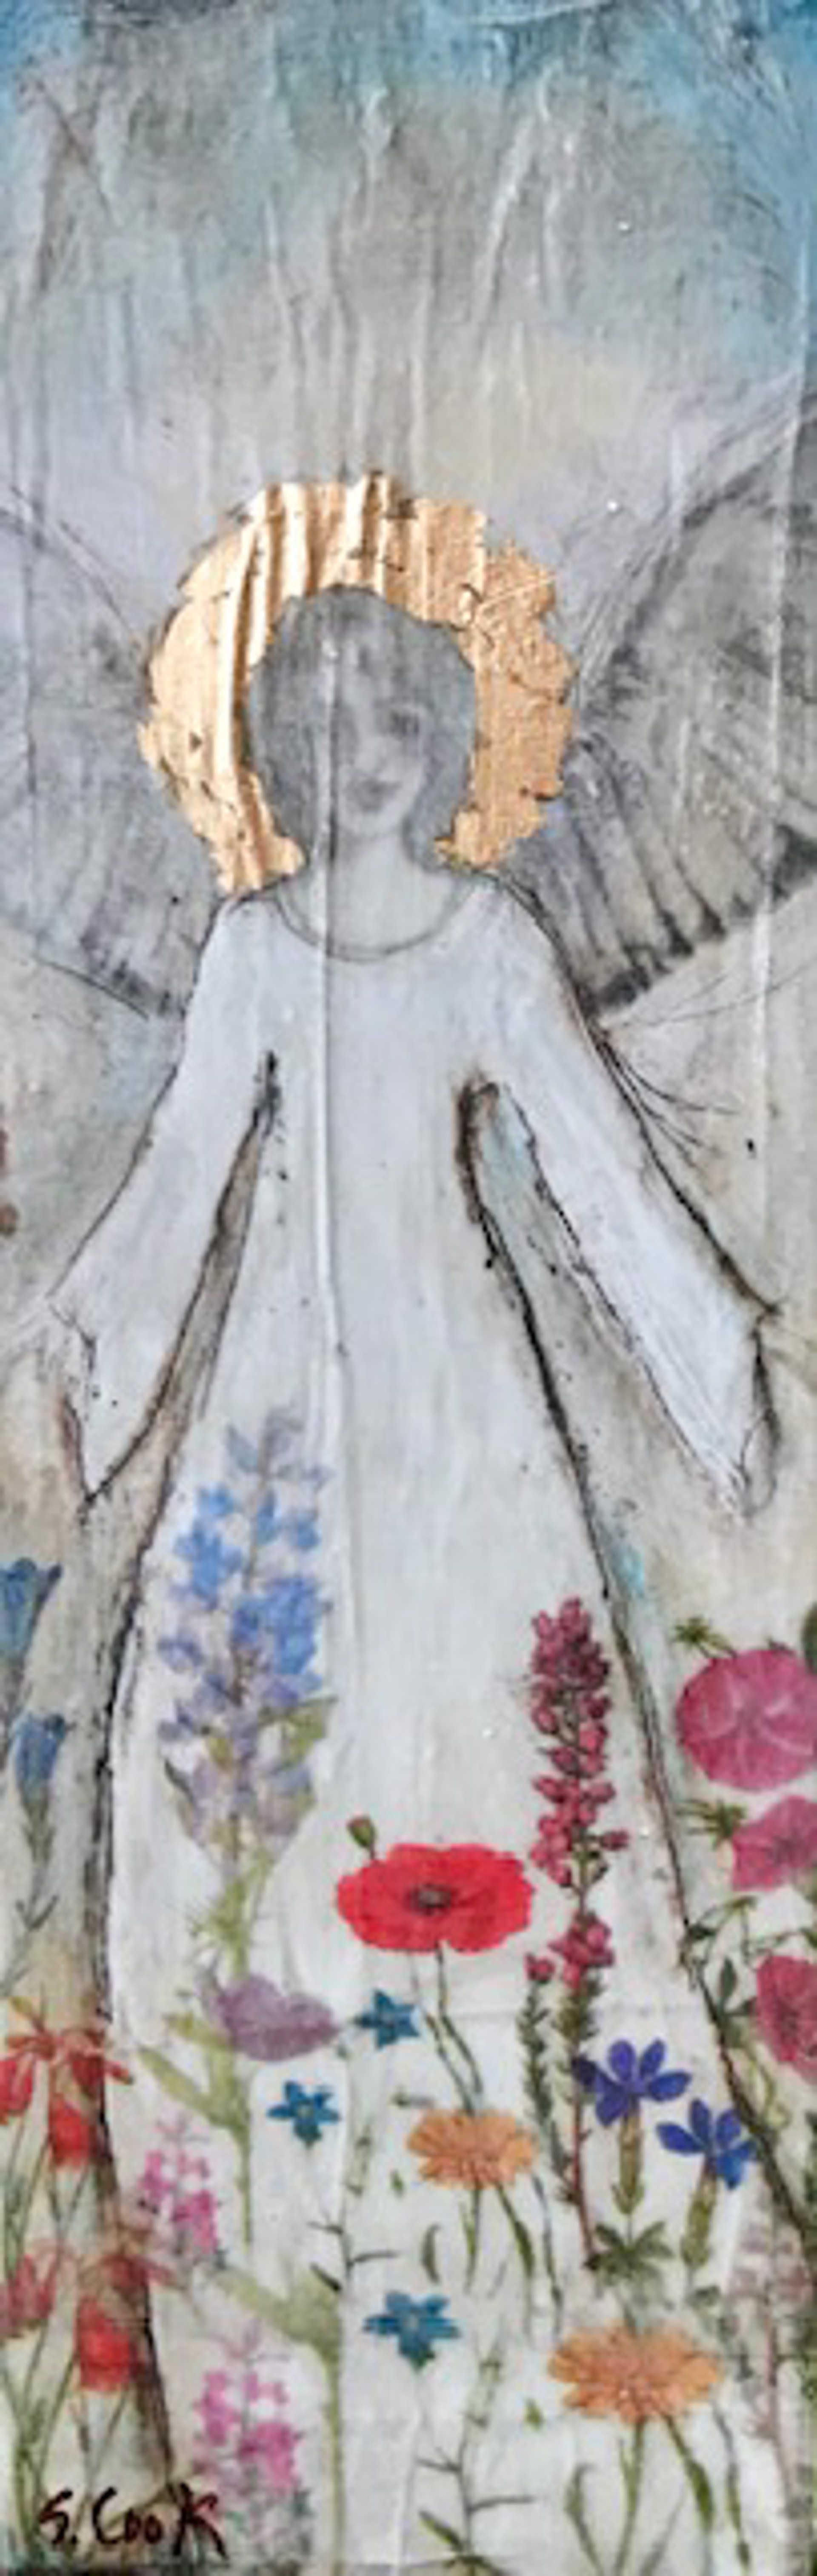 Garden Angel by Sherry Cook